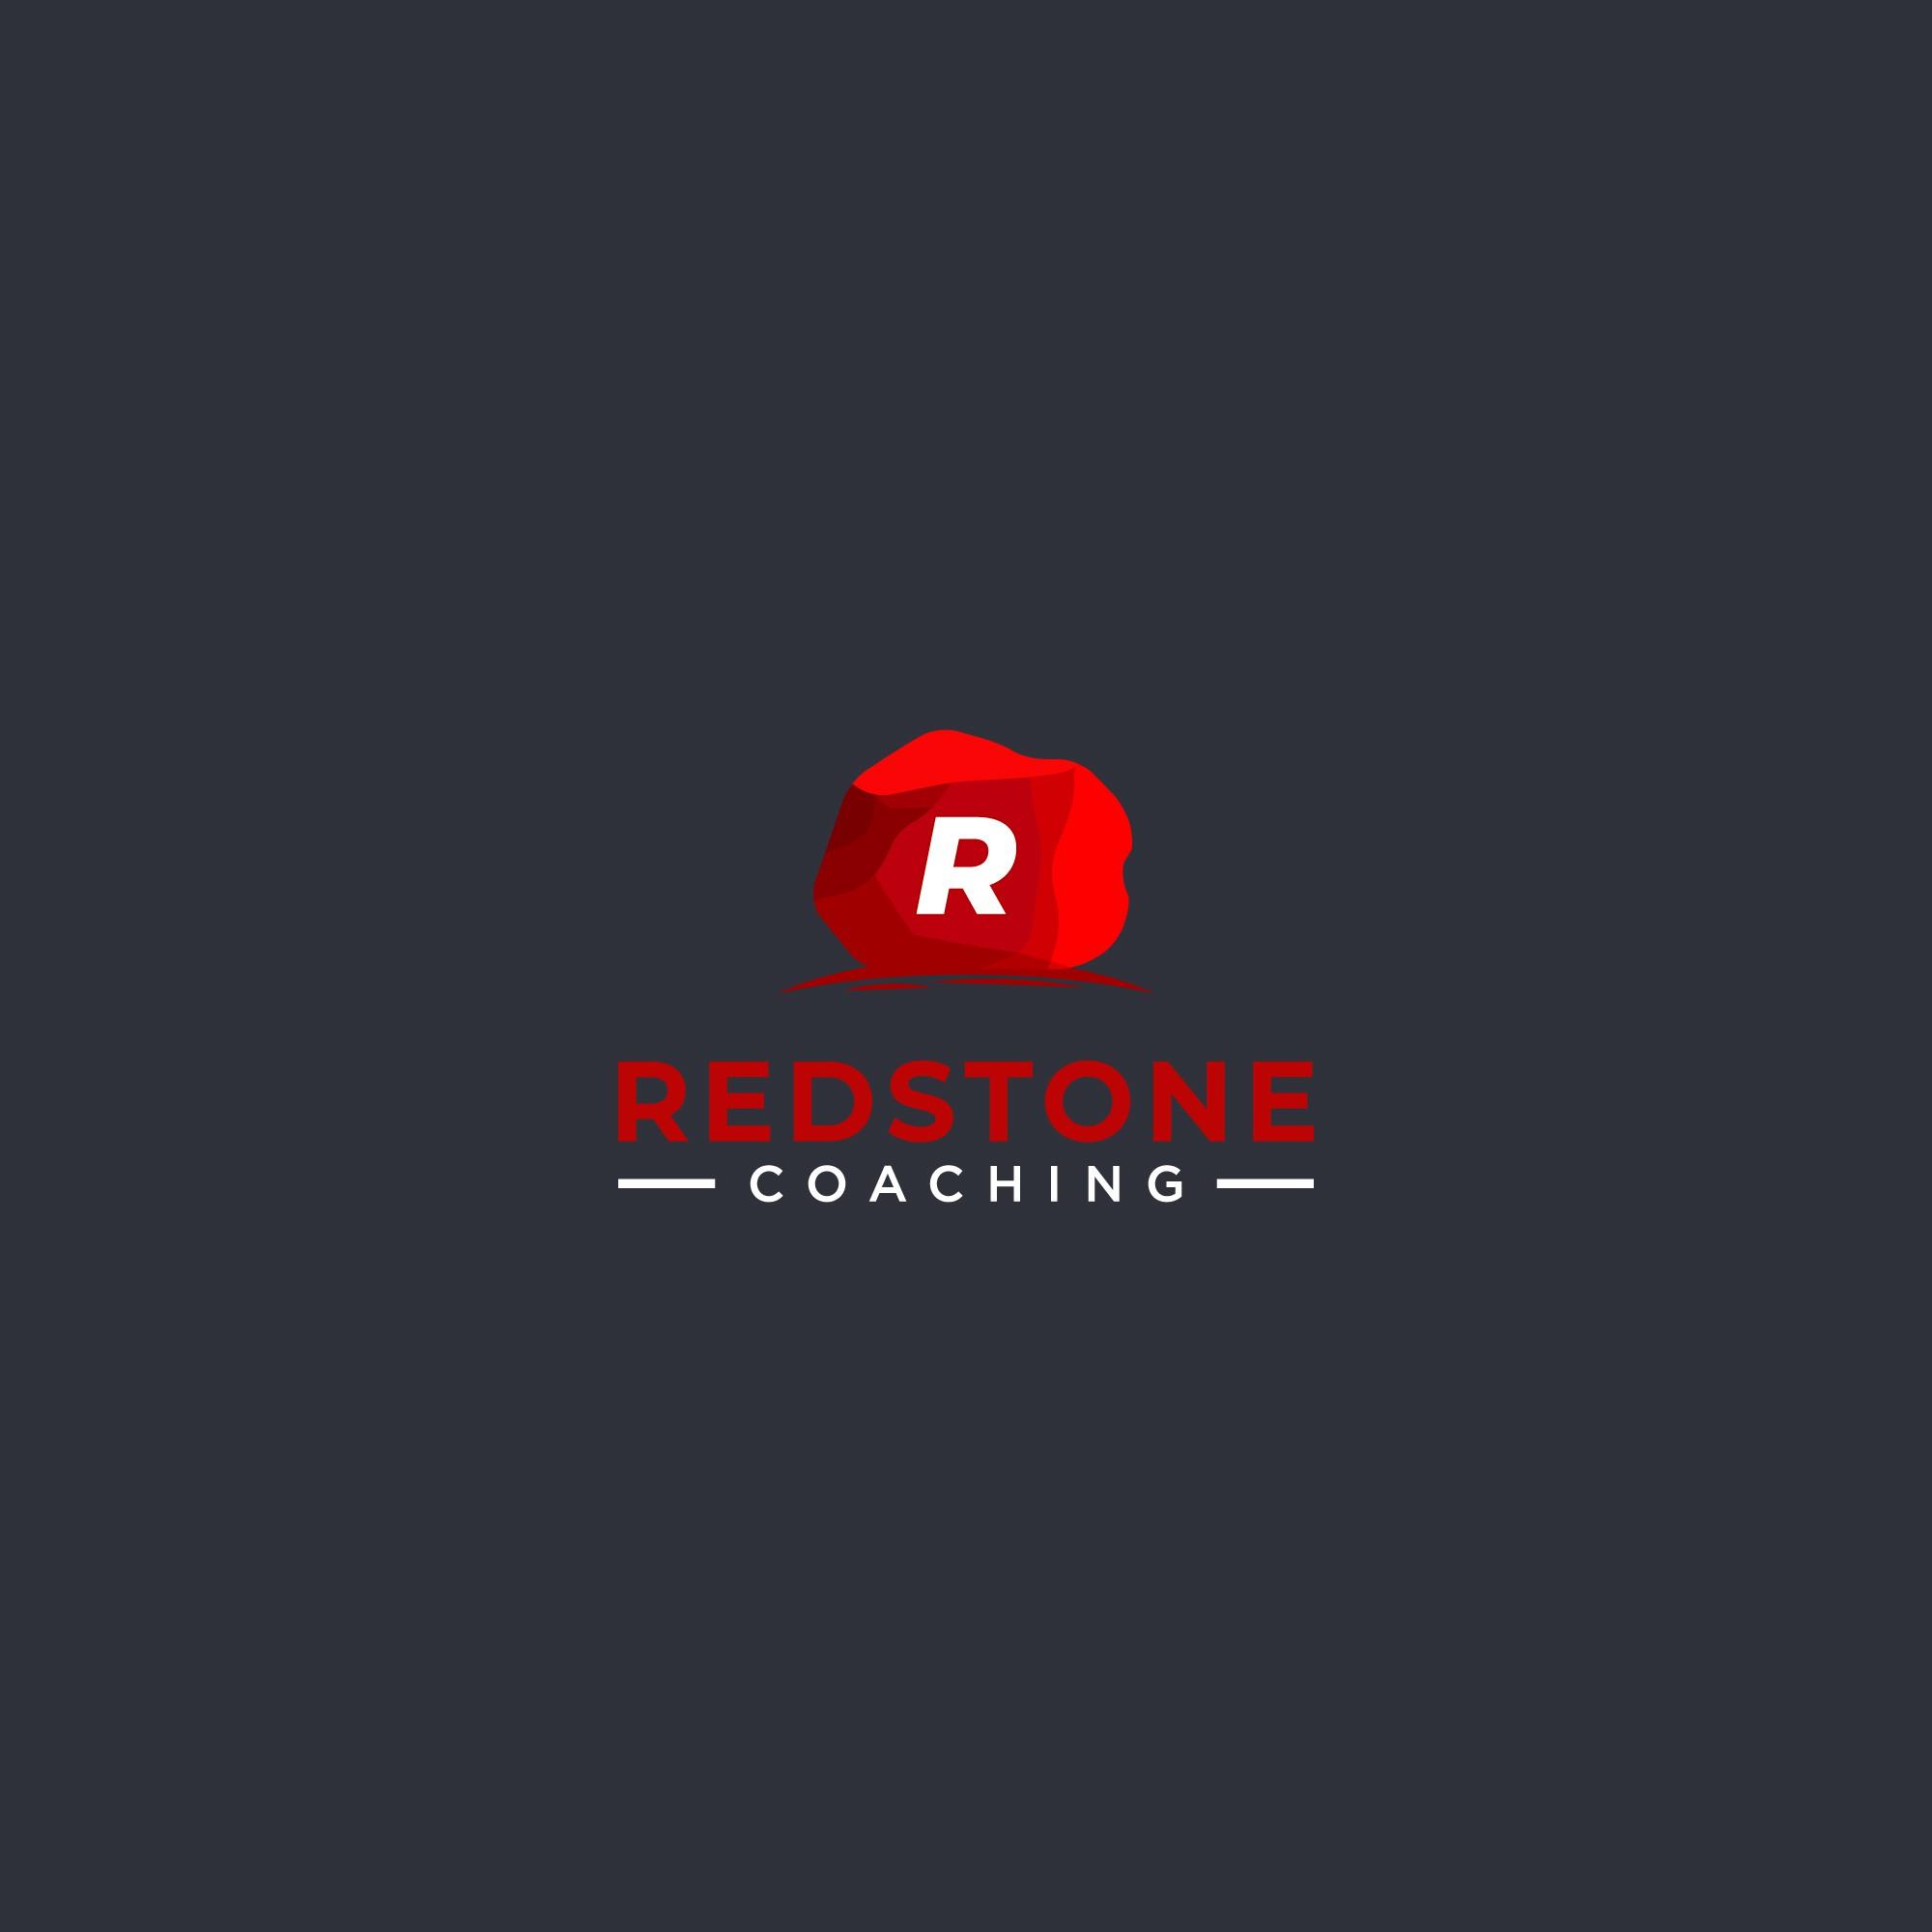 """Rustic nature """"redstone"""" logo for career & professional coaching services"""